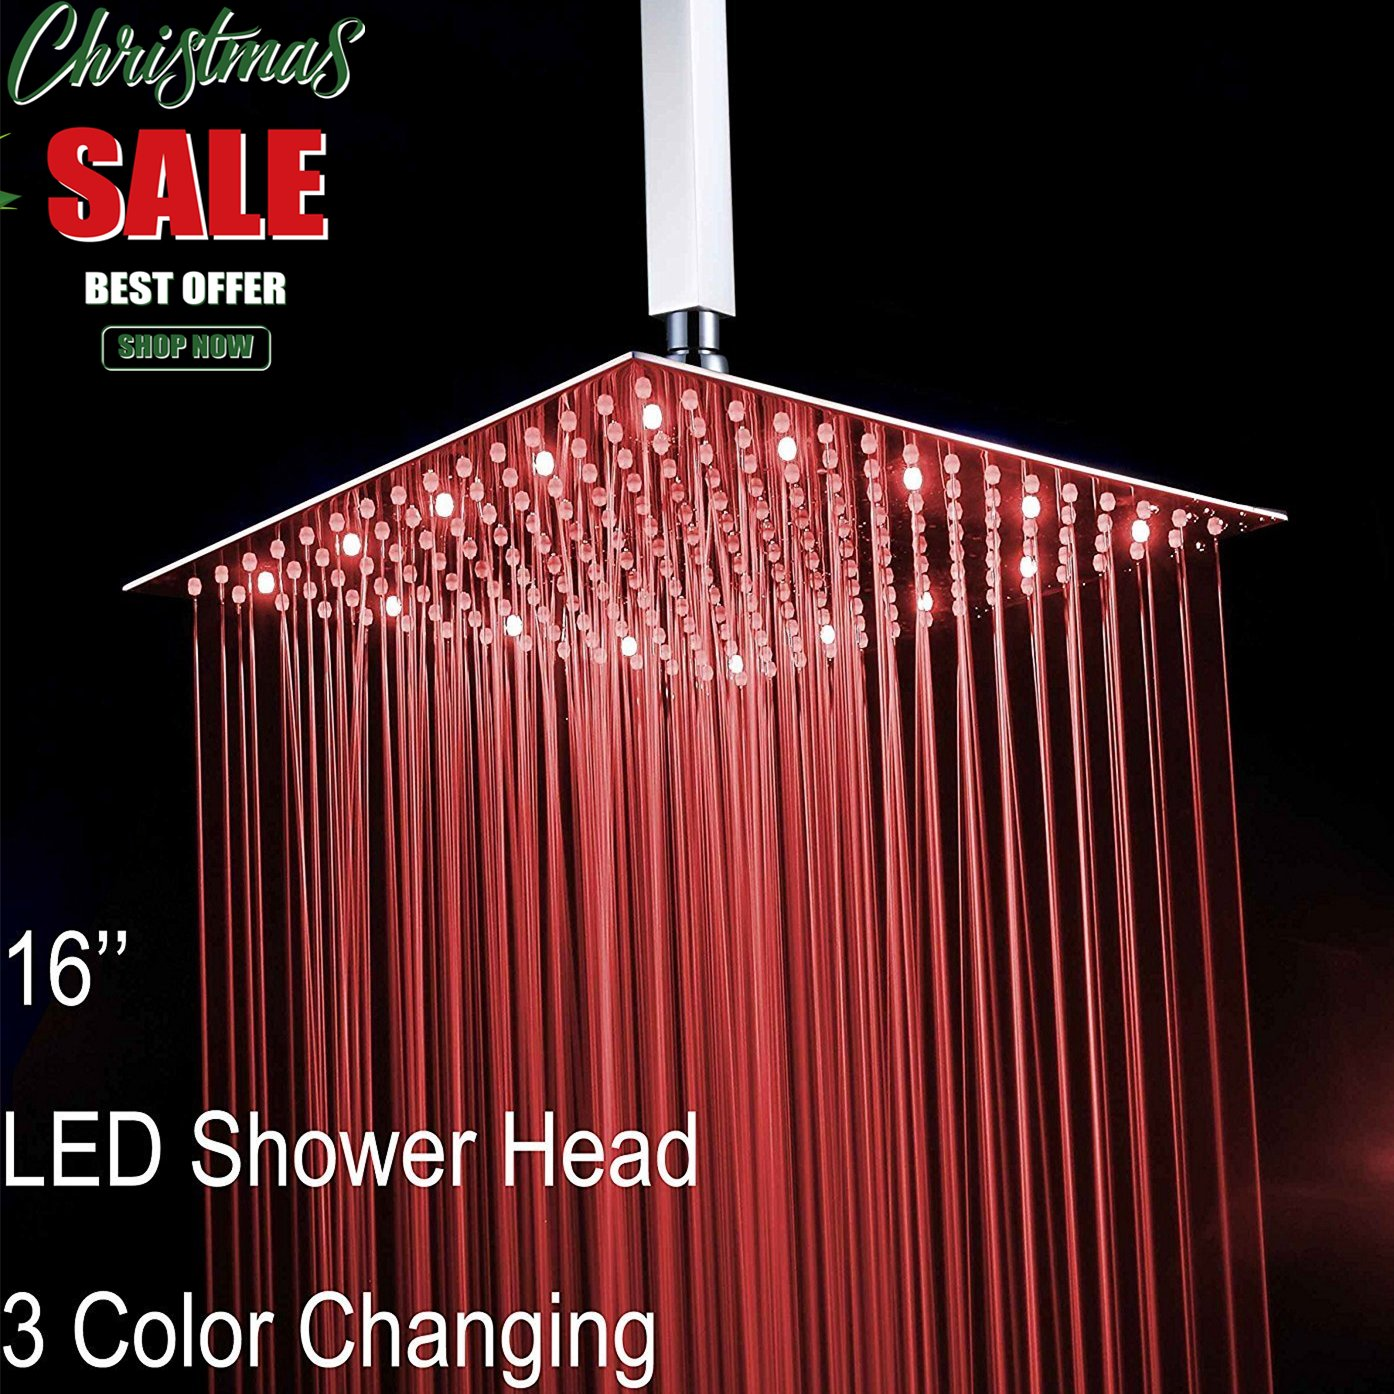 Fyeer 16'' Square LED Fixed Rainfall Shower Head Ultra-thin Ceiling Mounted, 3-LAYER Luxury Bathroom Showerheads Mirror Chrome Polished 304 Stainless Steel, Temperature Sensor 3 Colors Changing by Fyeer (Image #1)